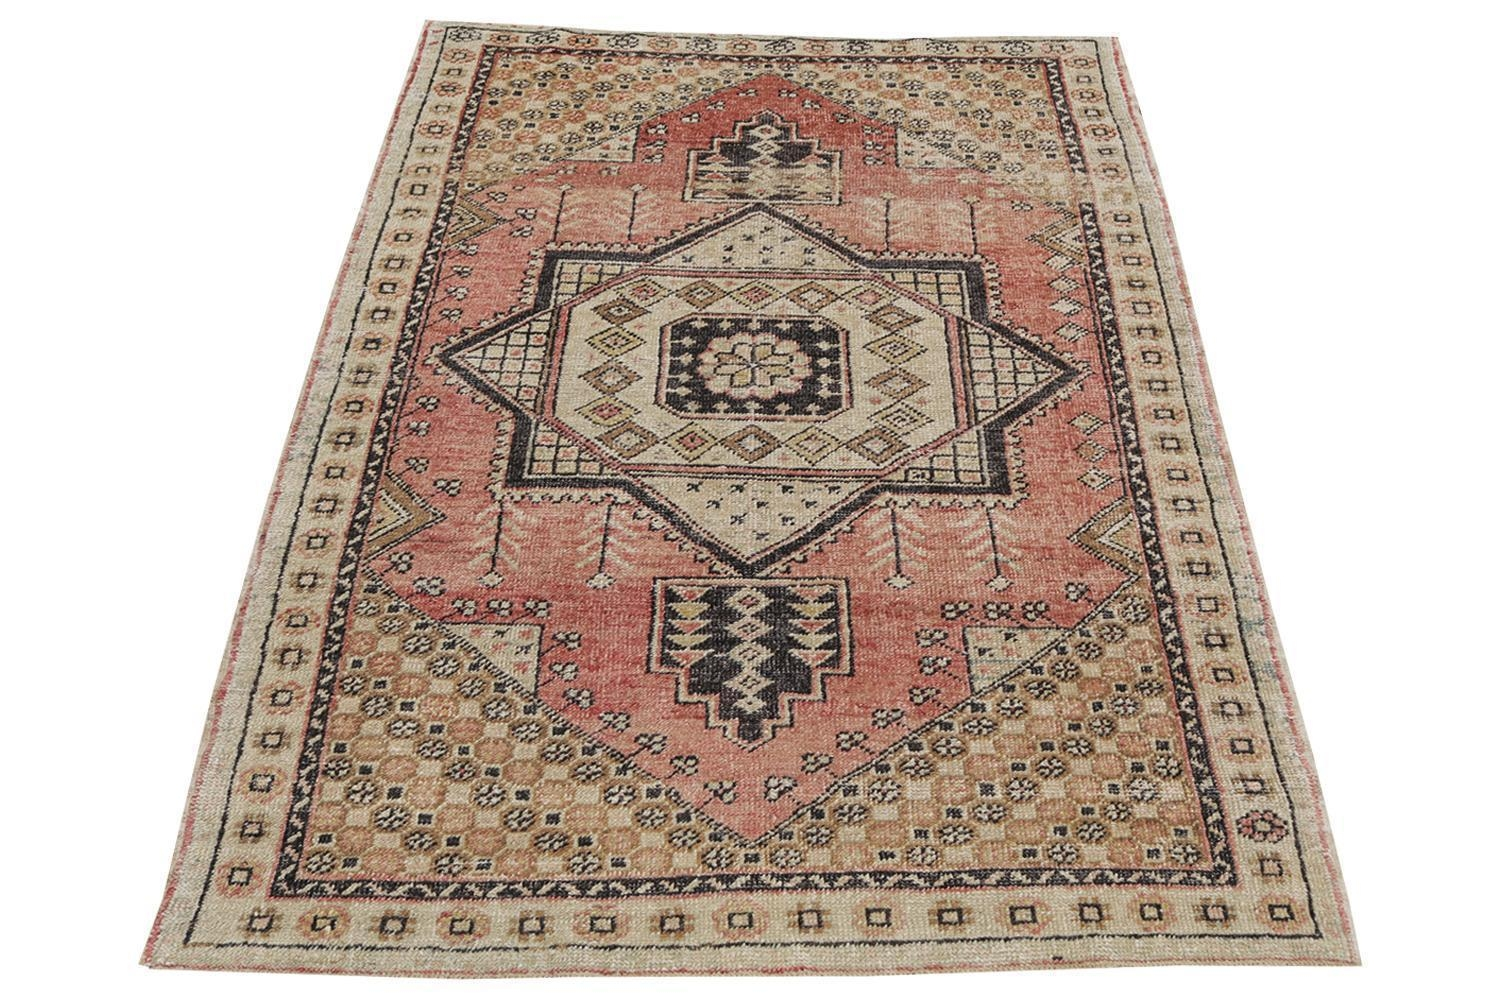 The Timeless Turkish Rug